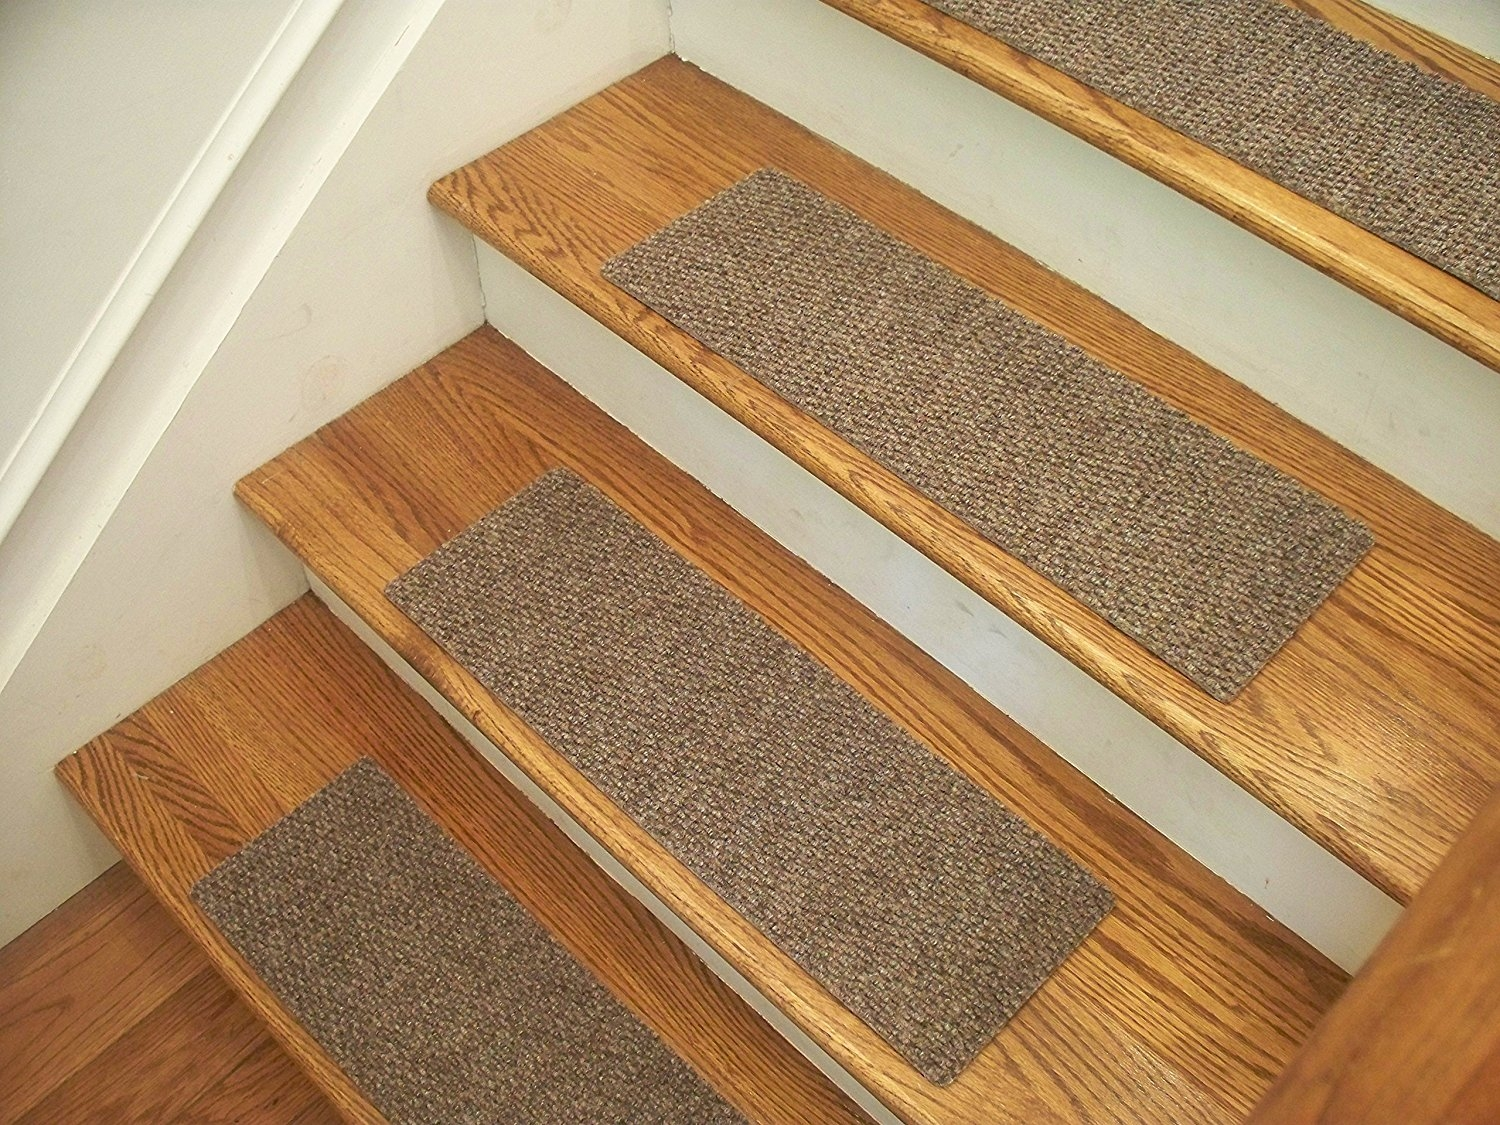 Amazon Essential Carpet Stair Treads Style Berber Color Throughout Premium Carpet Stair Treads (#4 of 20)